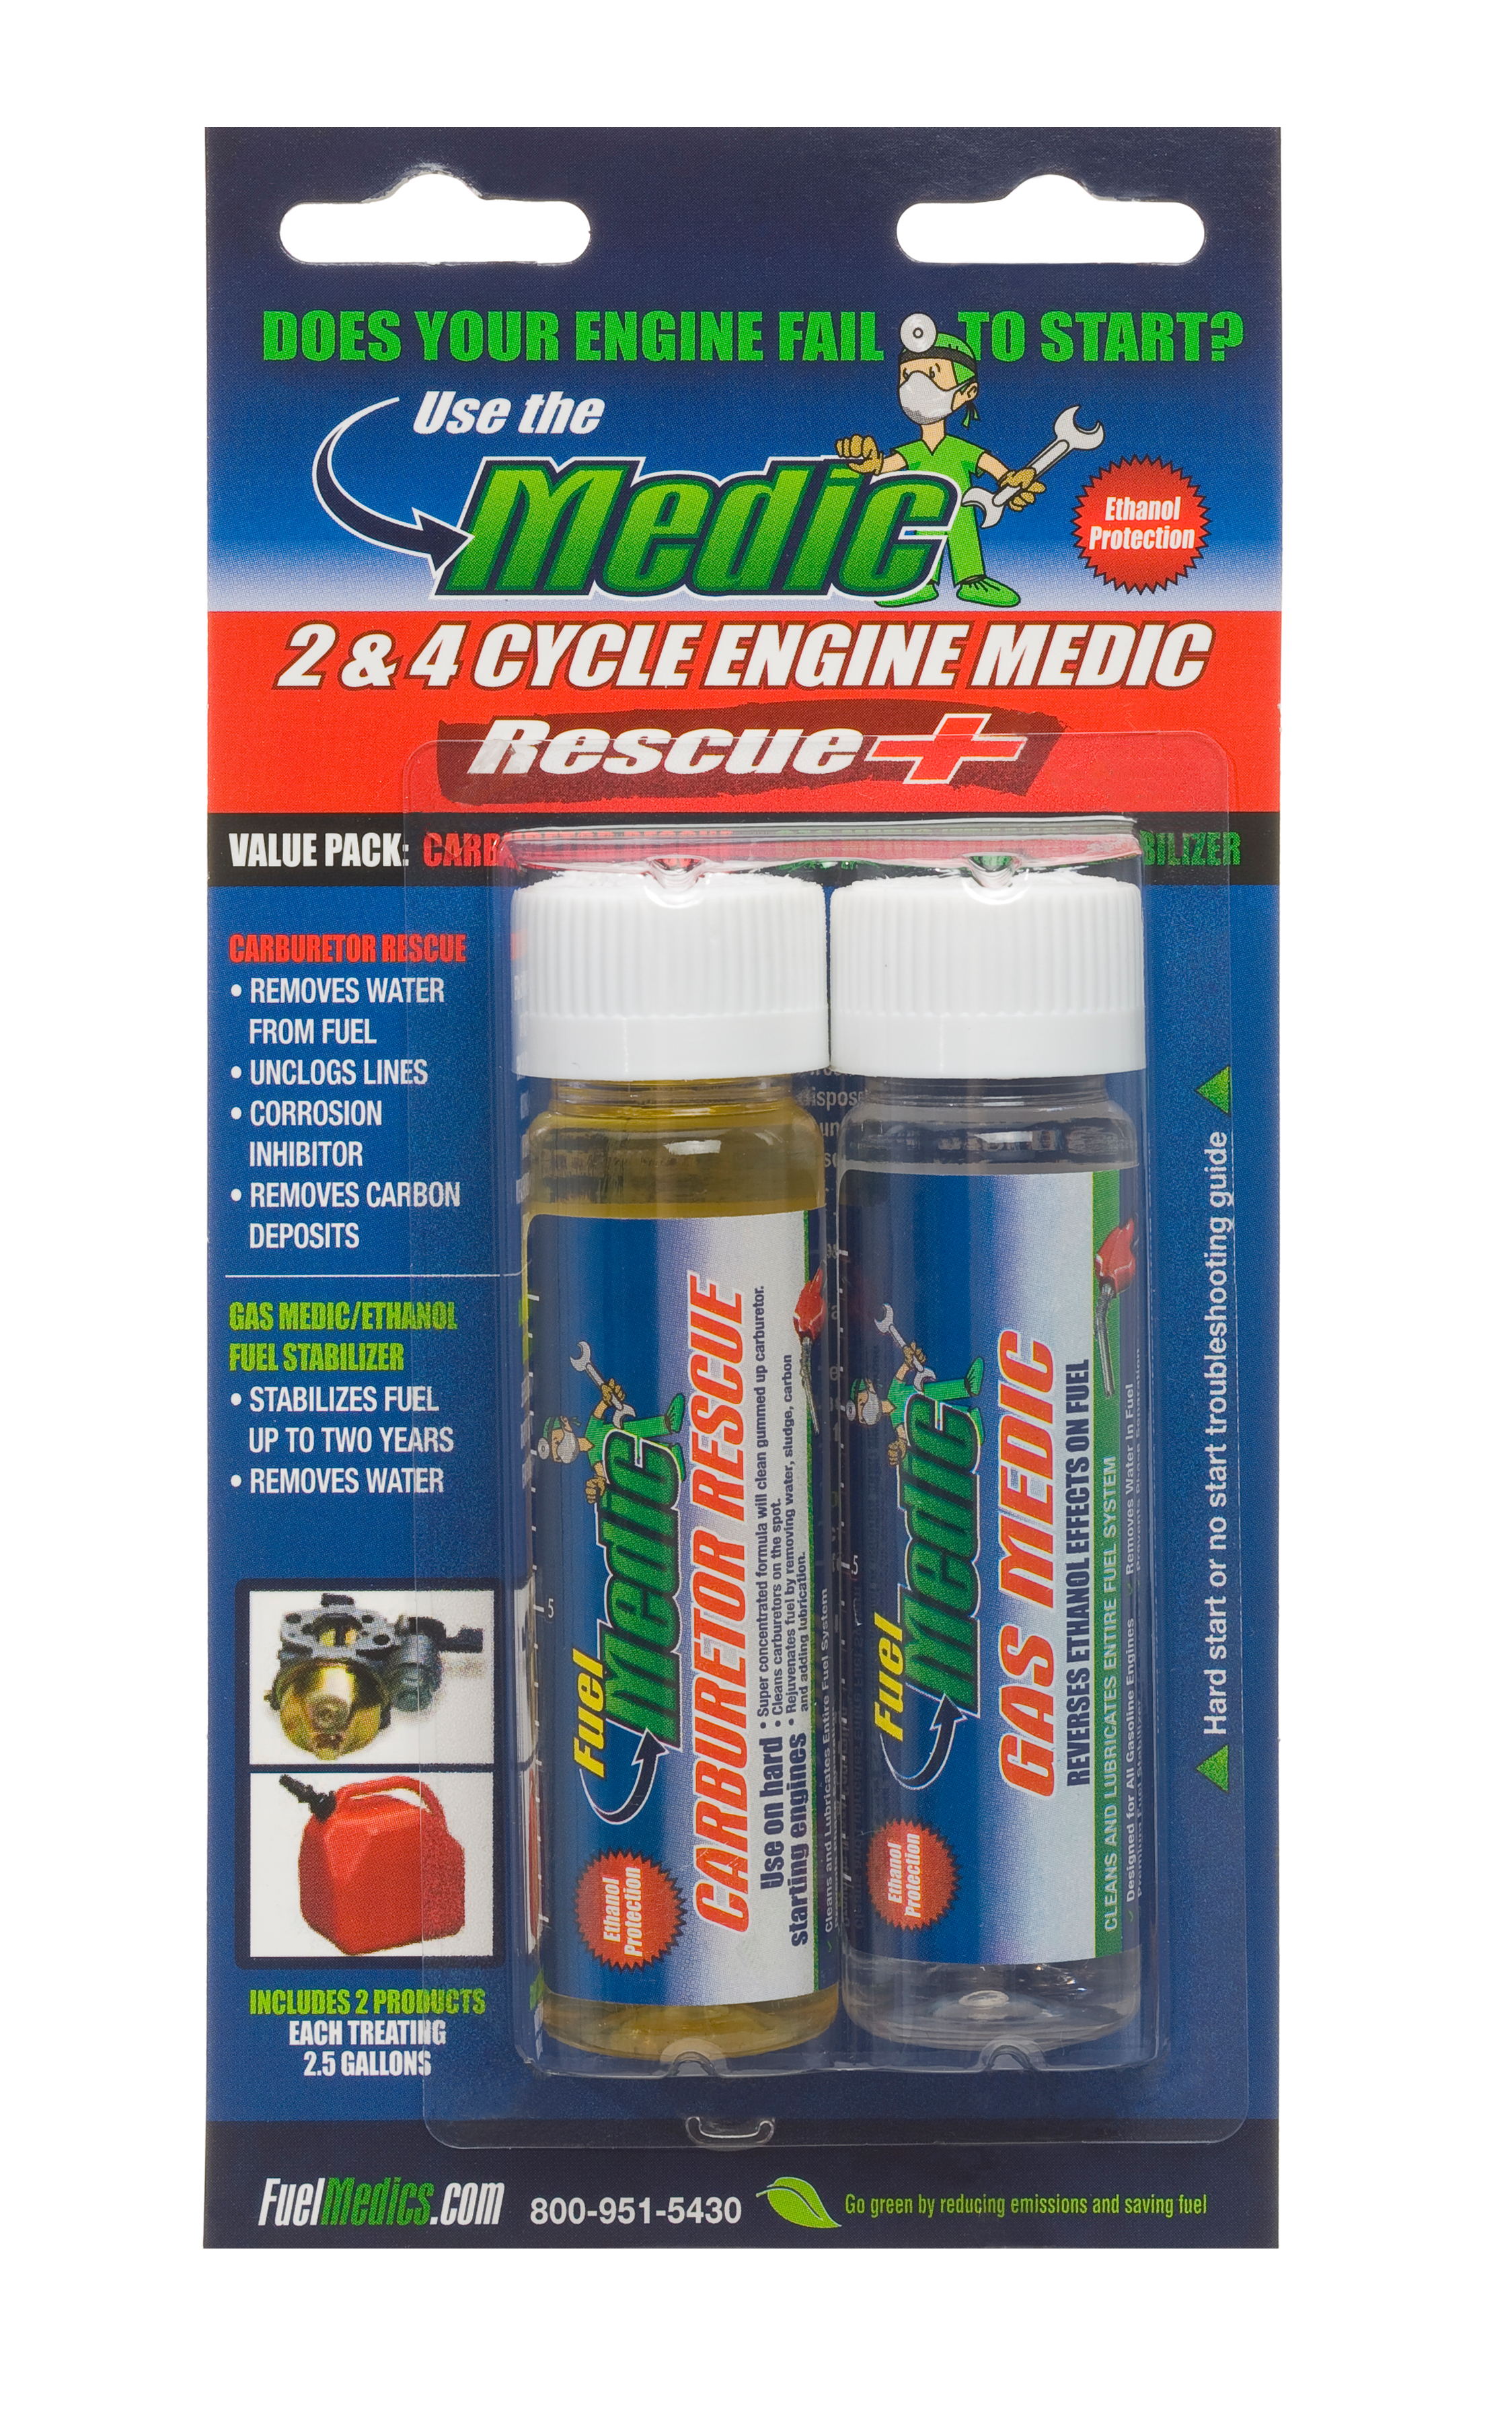 2 & 4 Cycle Medic Rescue